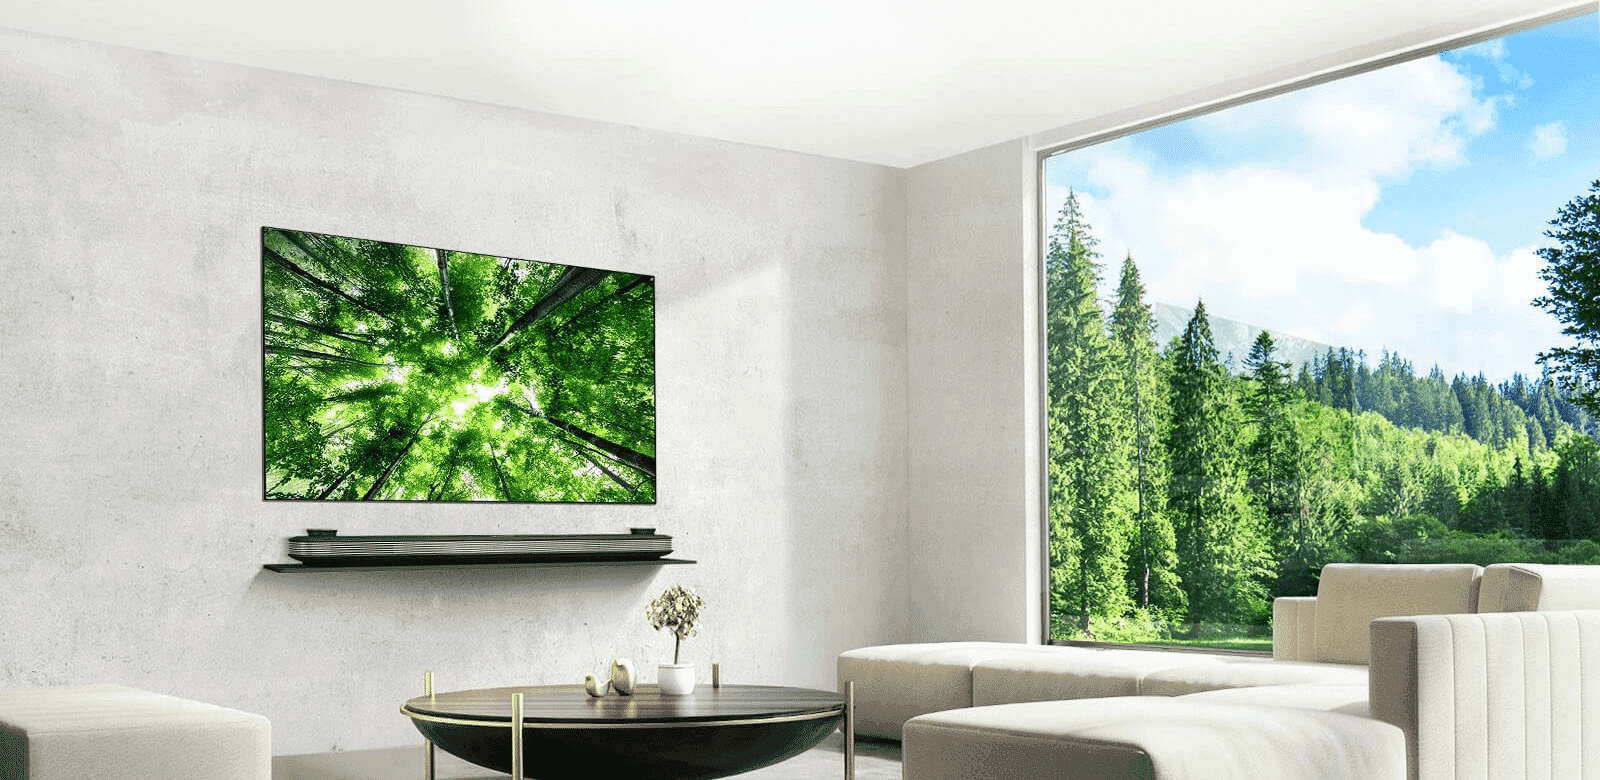 The new LG SIGNATURE Wallpaper TV combines OLED screen, powerful Dolby Atmos® sound and ...